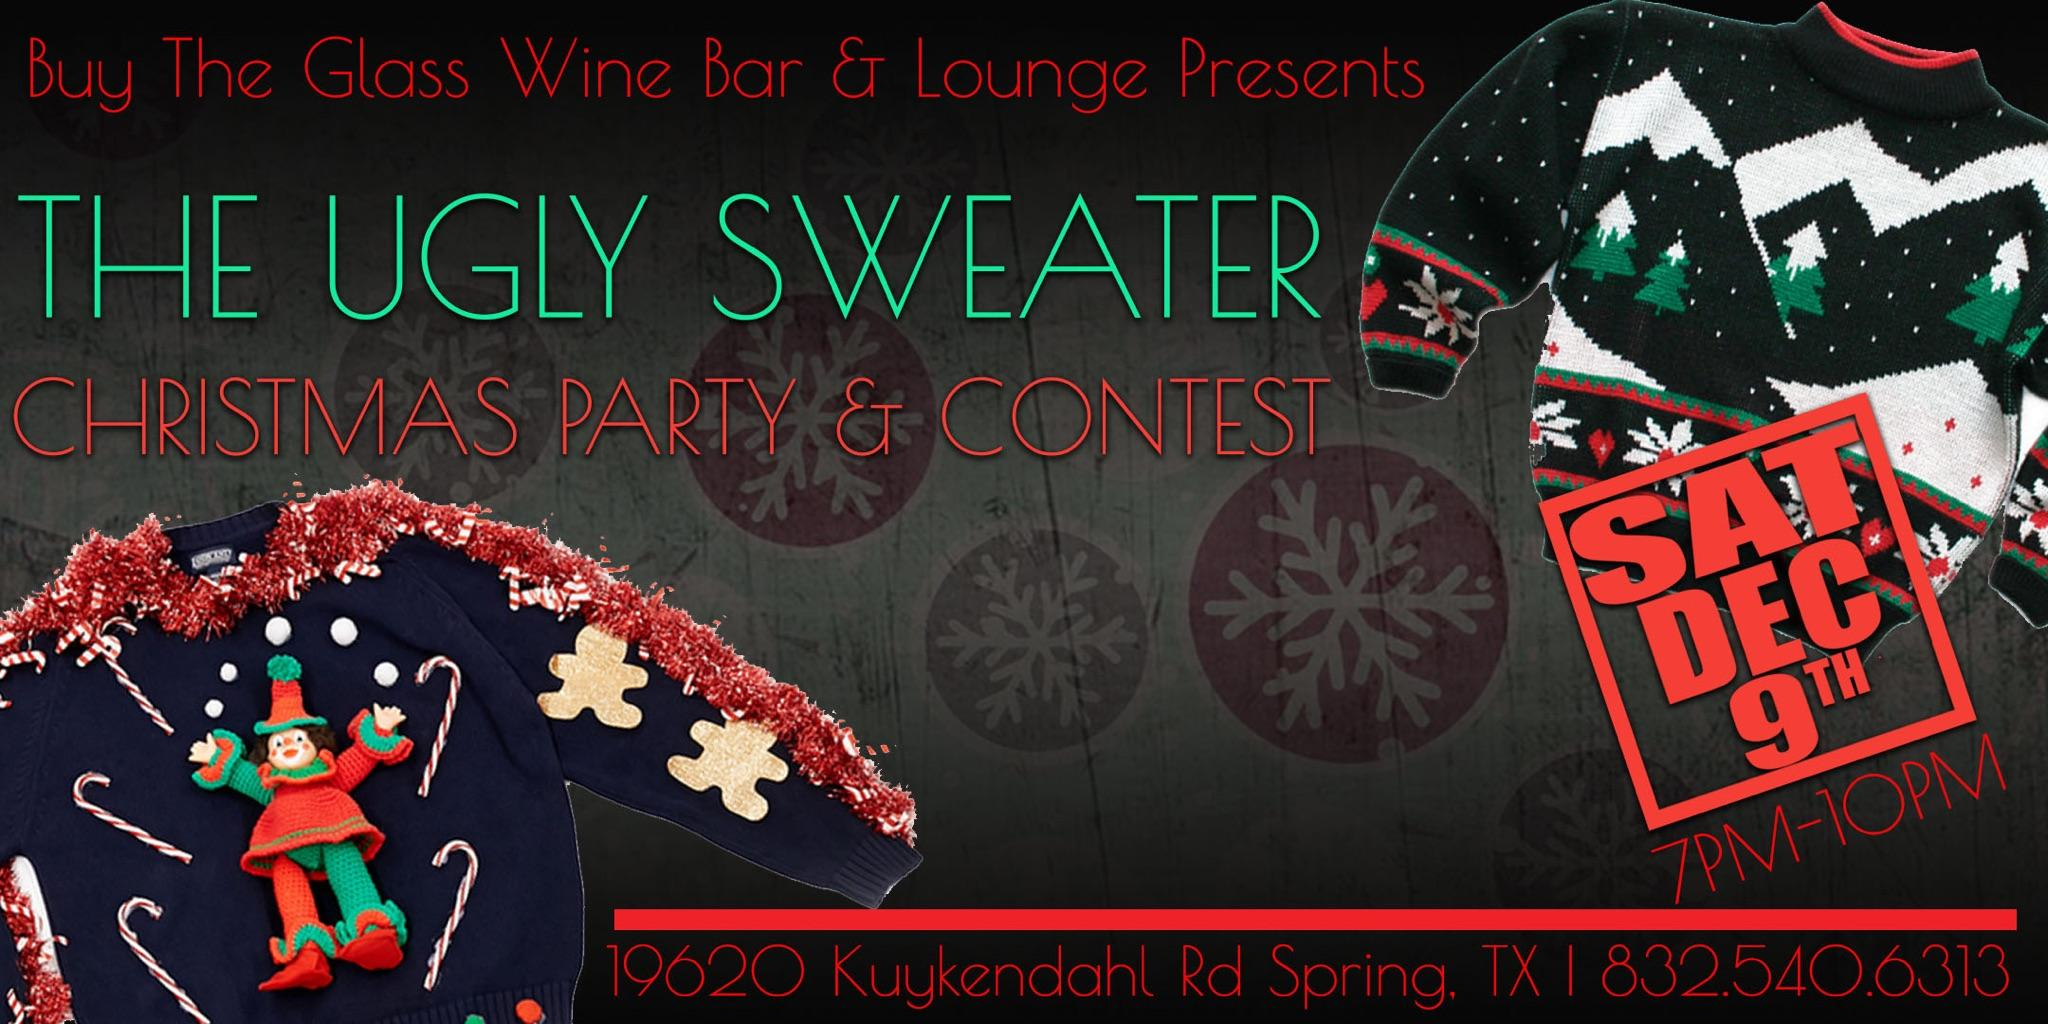 Ugly Christmas Sweater Party and Wine Tasting | Spring, TX | Buy the Glass Wine Bar & Lounge | December 9, 2017